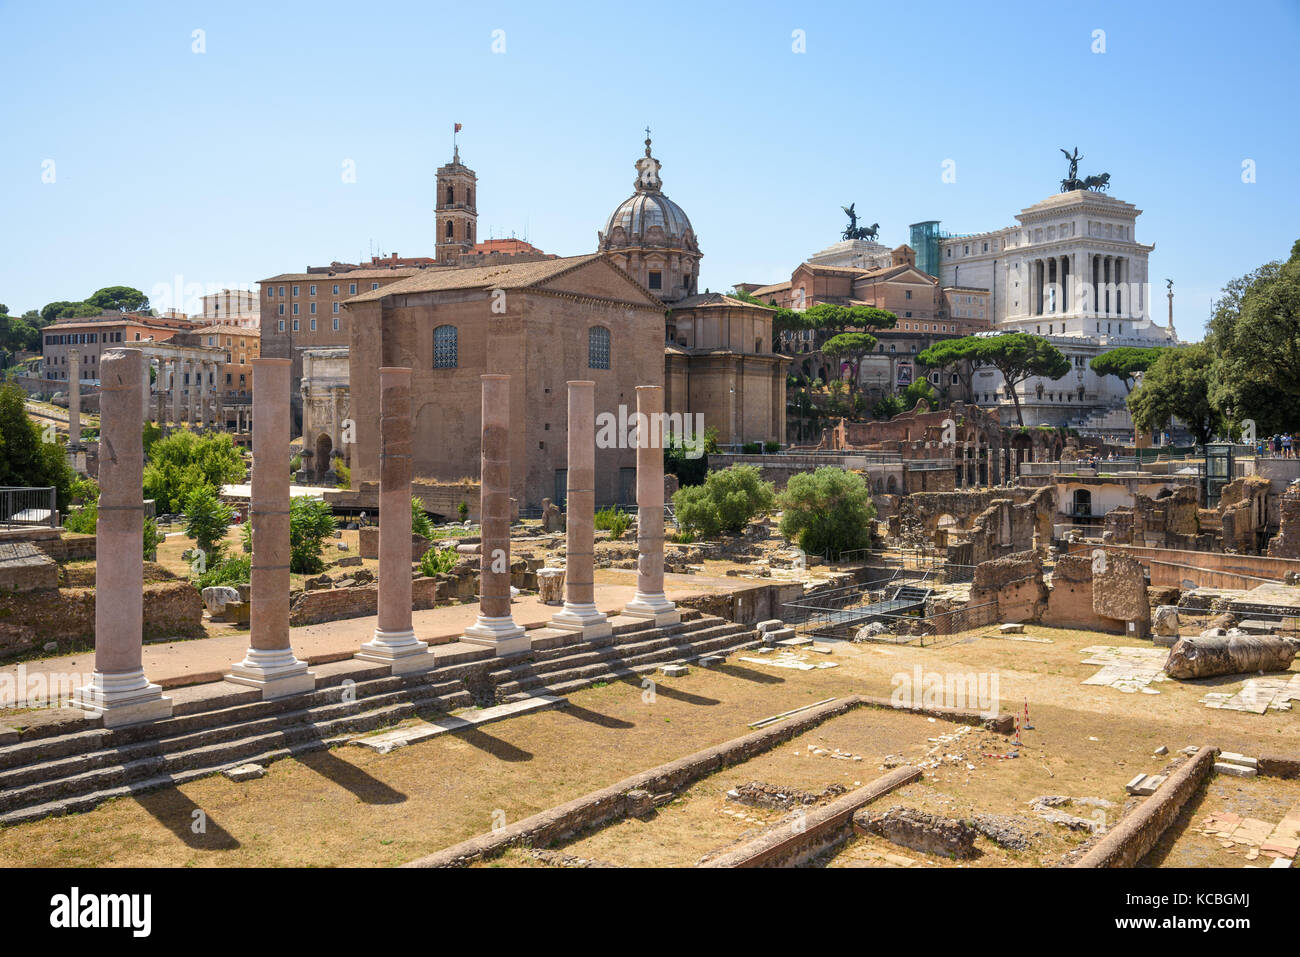 Temple of Peace, Forum of Vespasian, Rome, Italy - Stock Image